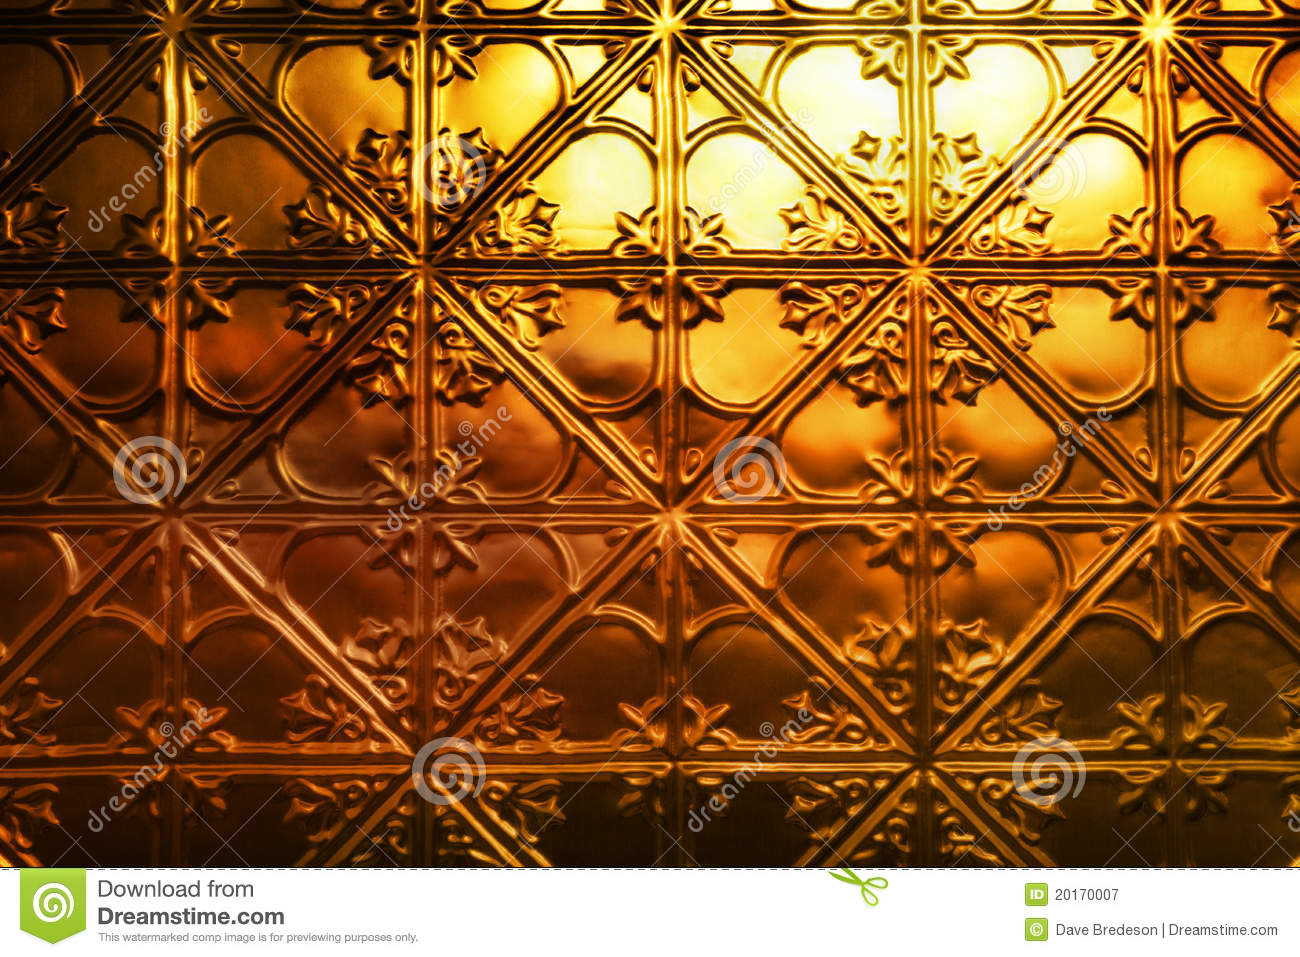 Girly Background Royalty Free Stock Photo: Christmas Gold Metal Background Stock Image